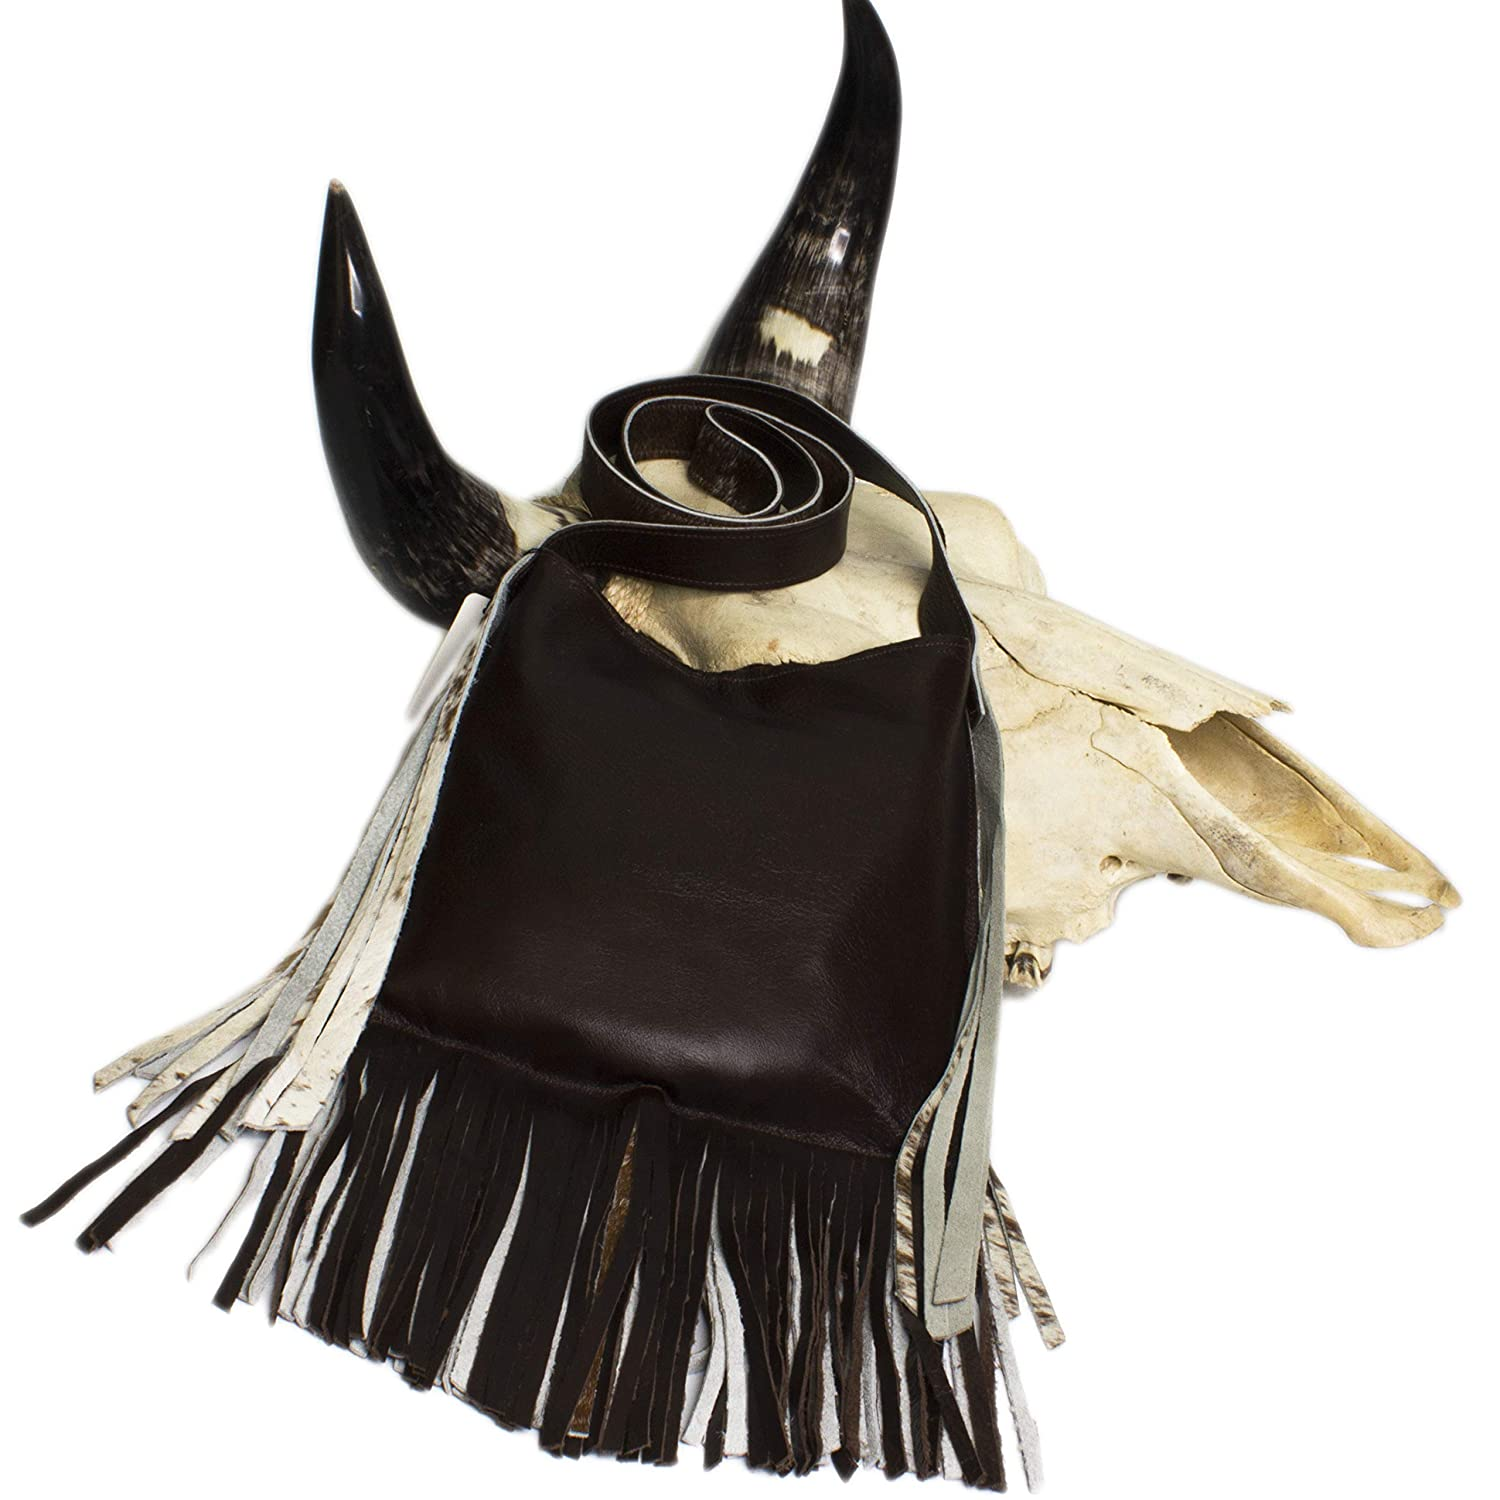 Raviani Cross Body Fringe Bag Brown /& White Hair on Leather W//Cross Studs